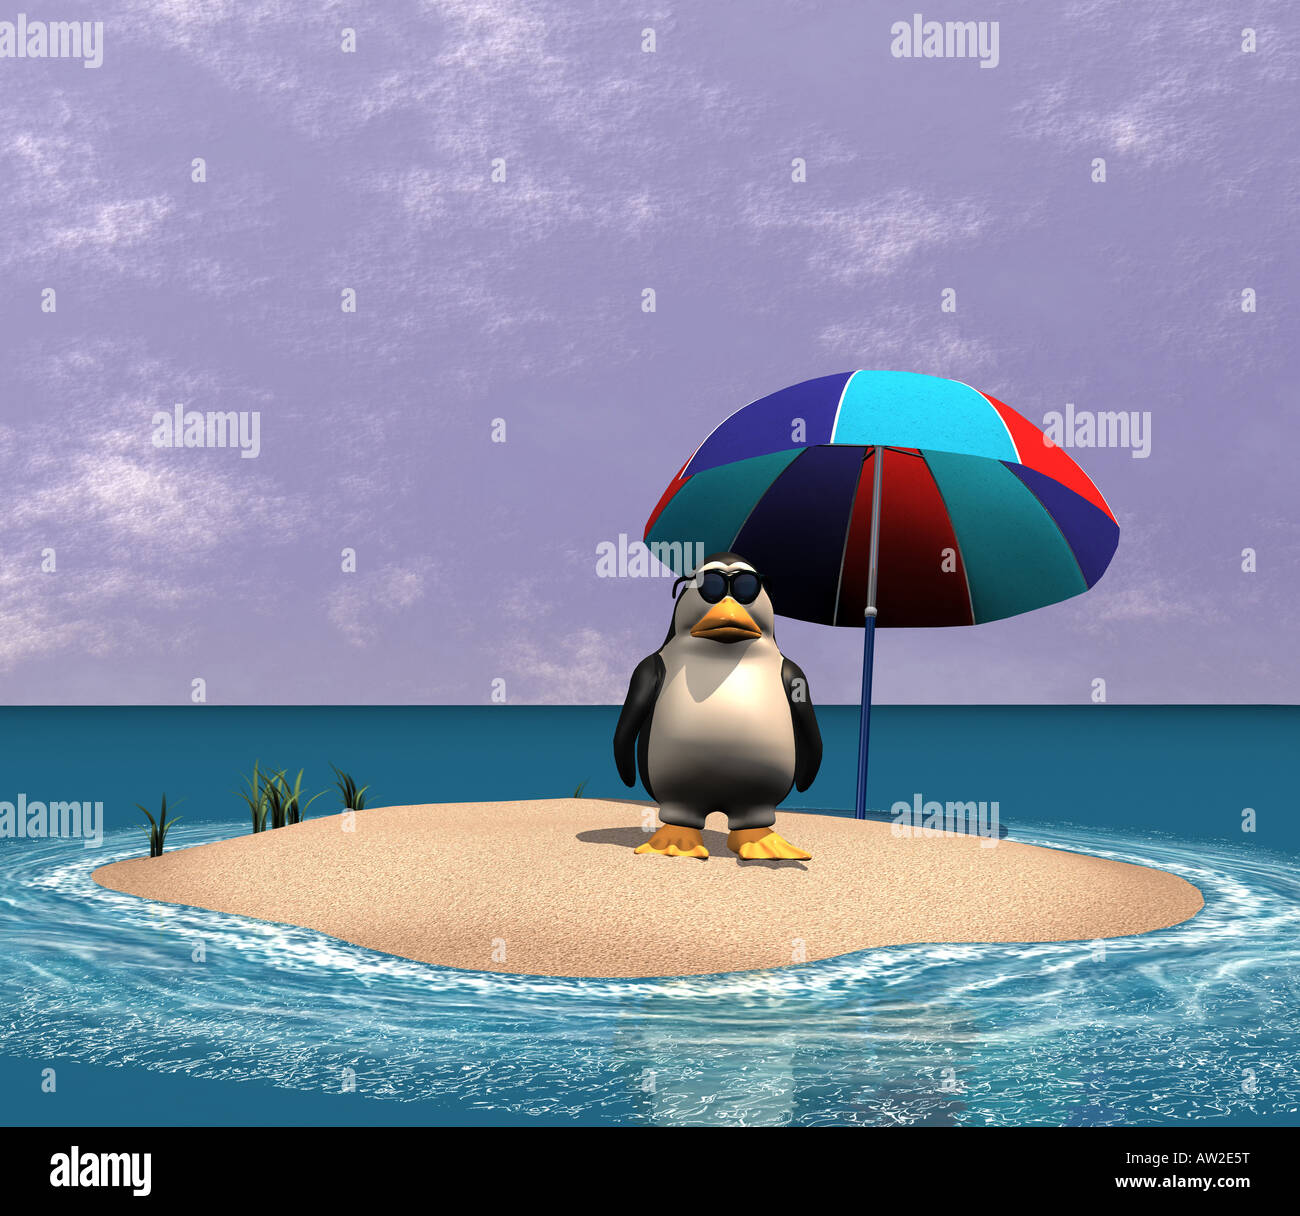 Symbol picture for the melted polar caps and icebergs as effect of climate warming Stock Photo